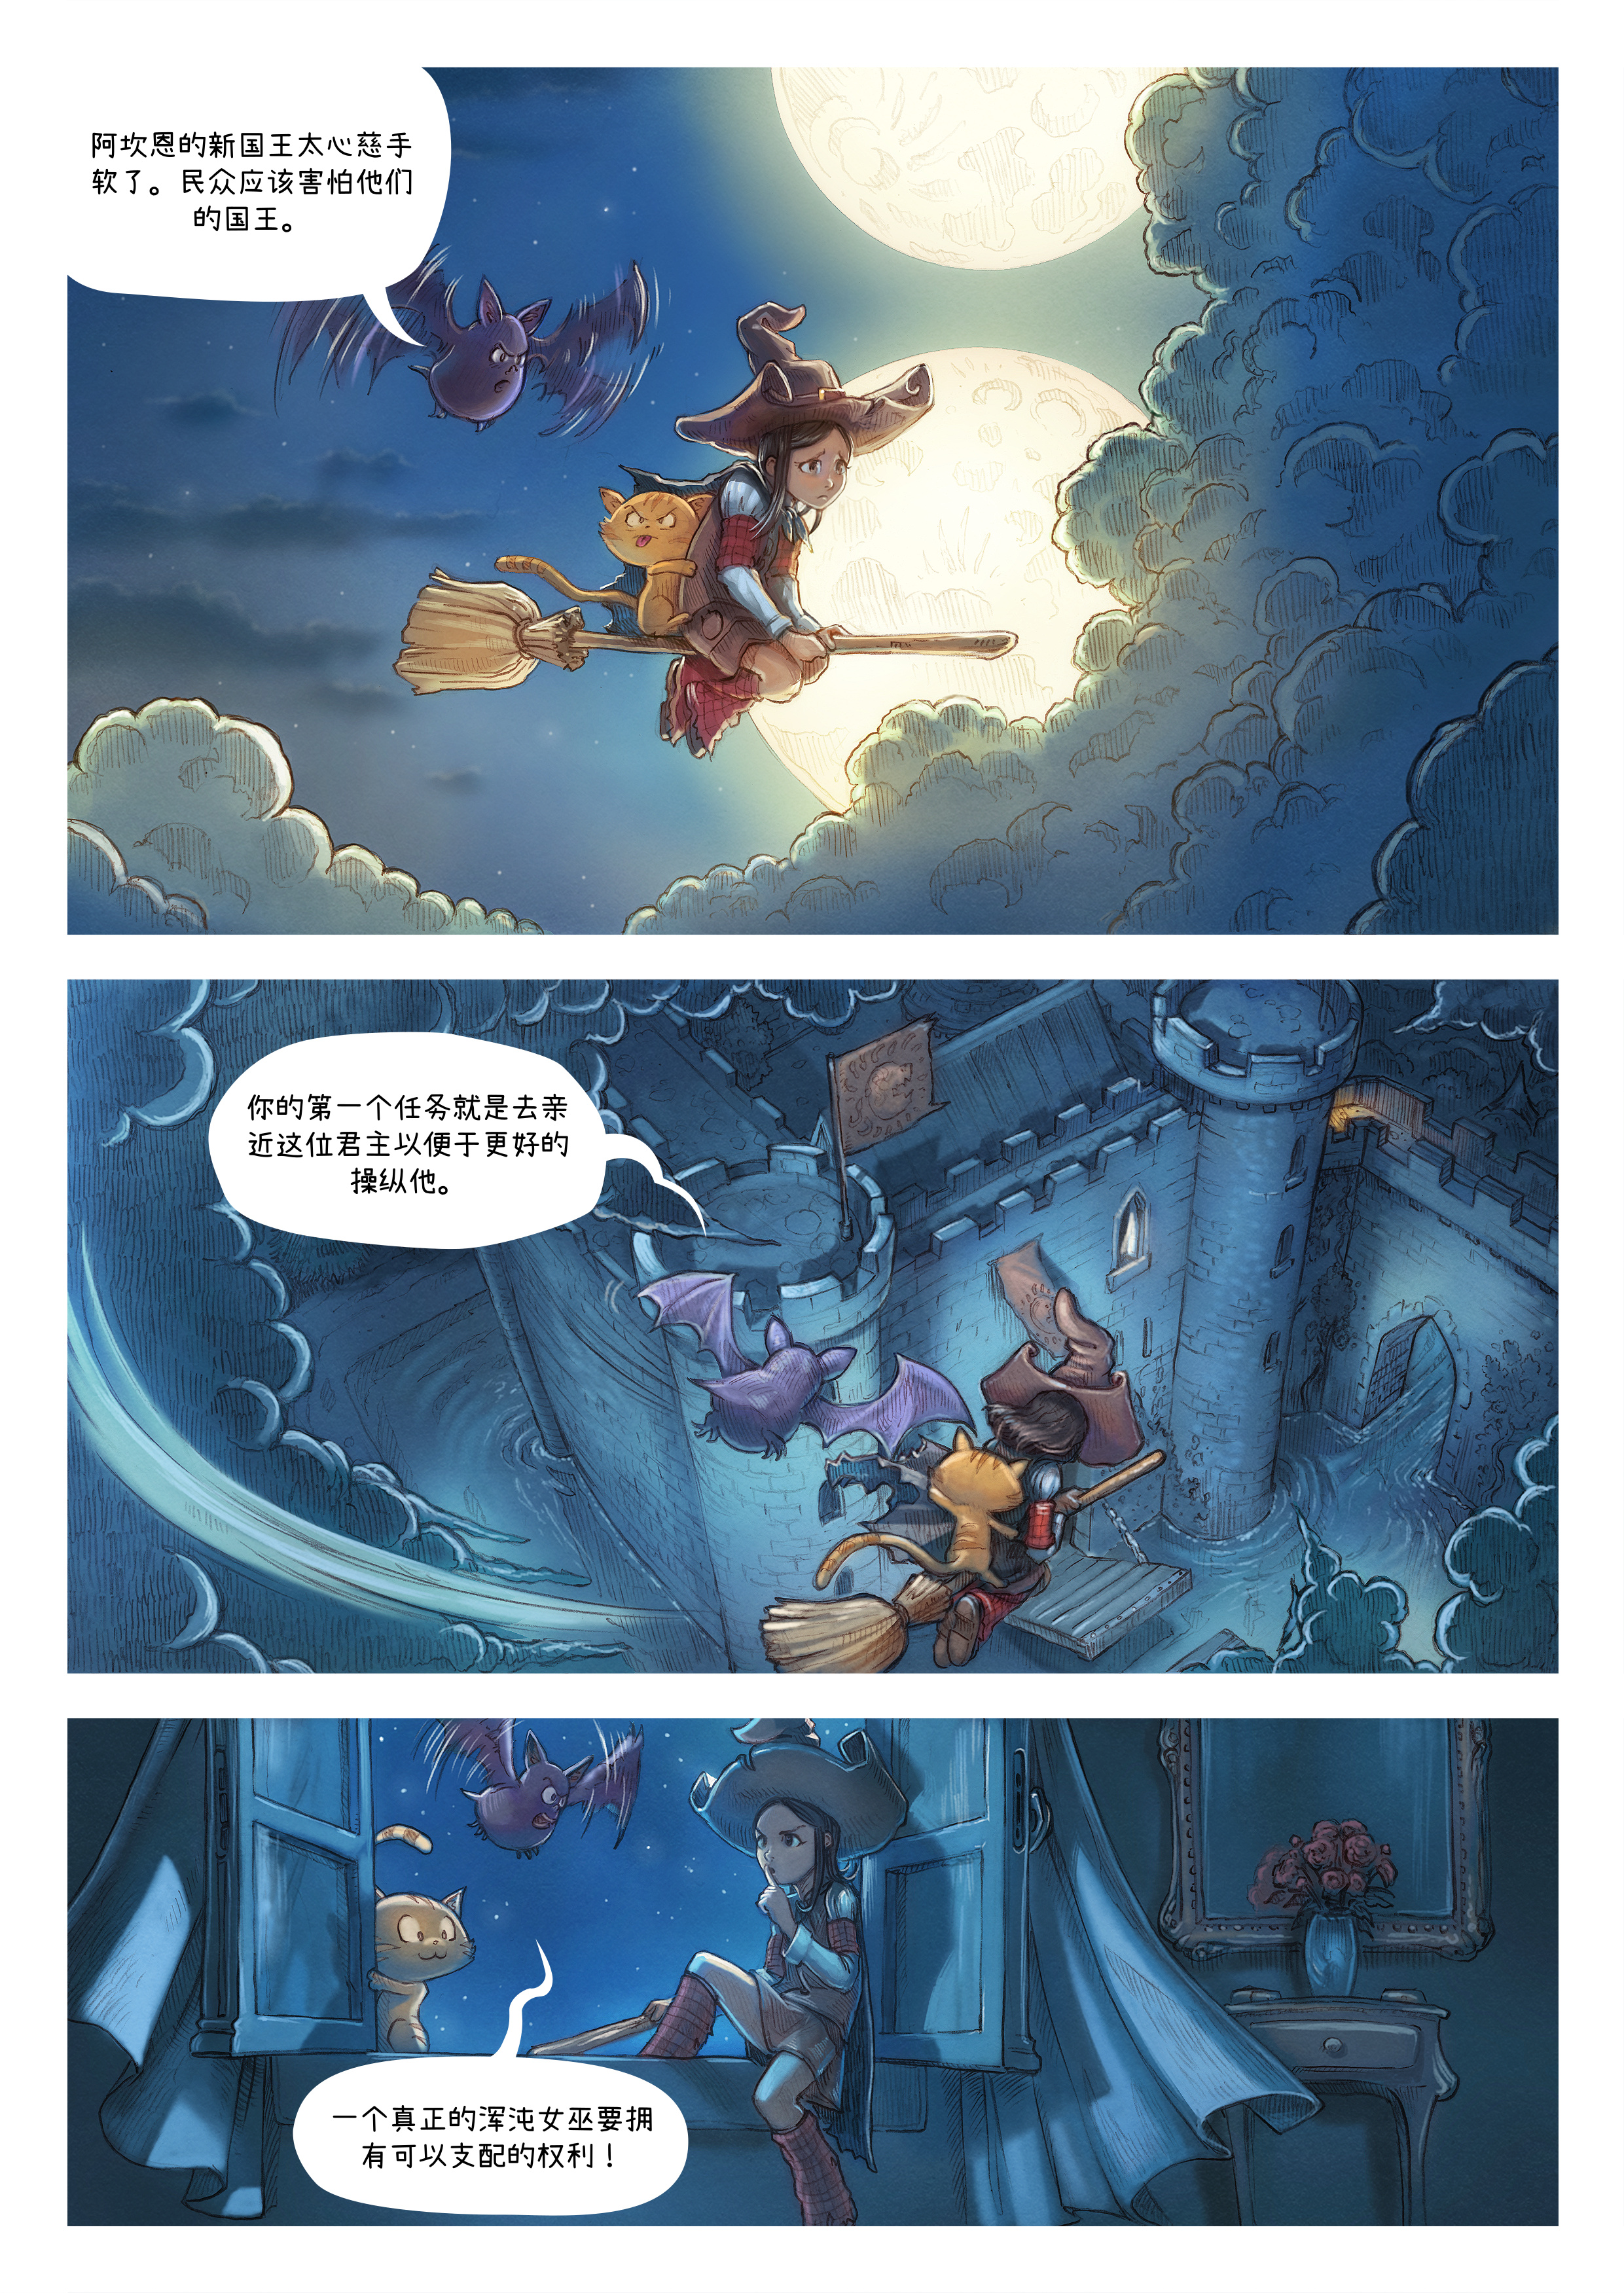 A webcomic page of Pepper&Carrot, 漫画全集 11 [cn], 页面 3